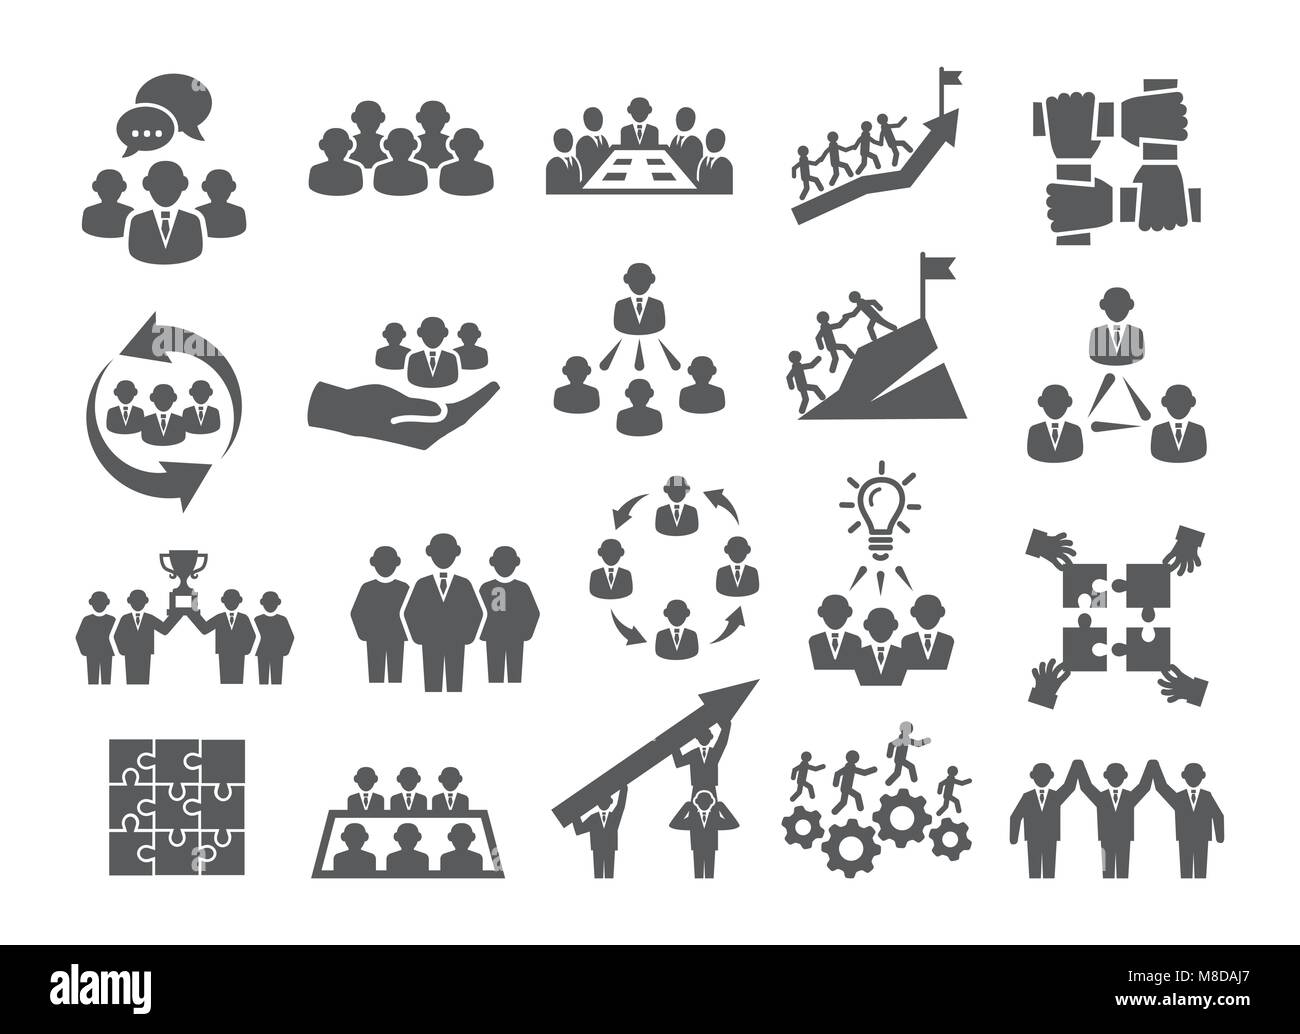 Team work icons - Stock Image